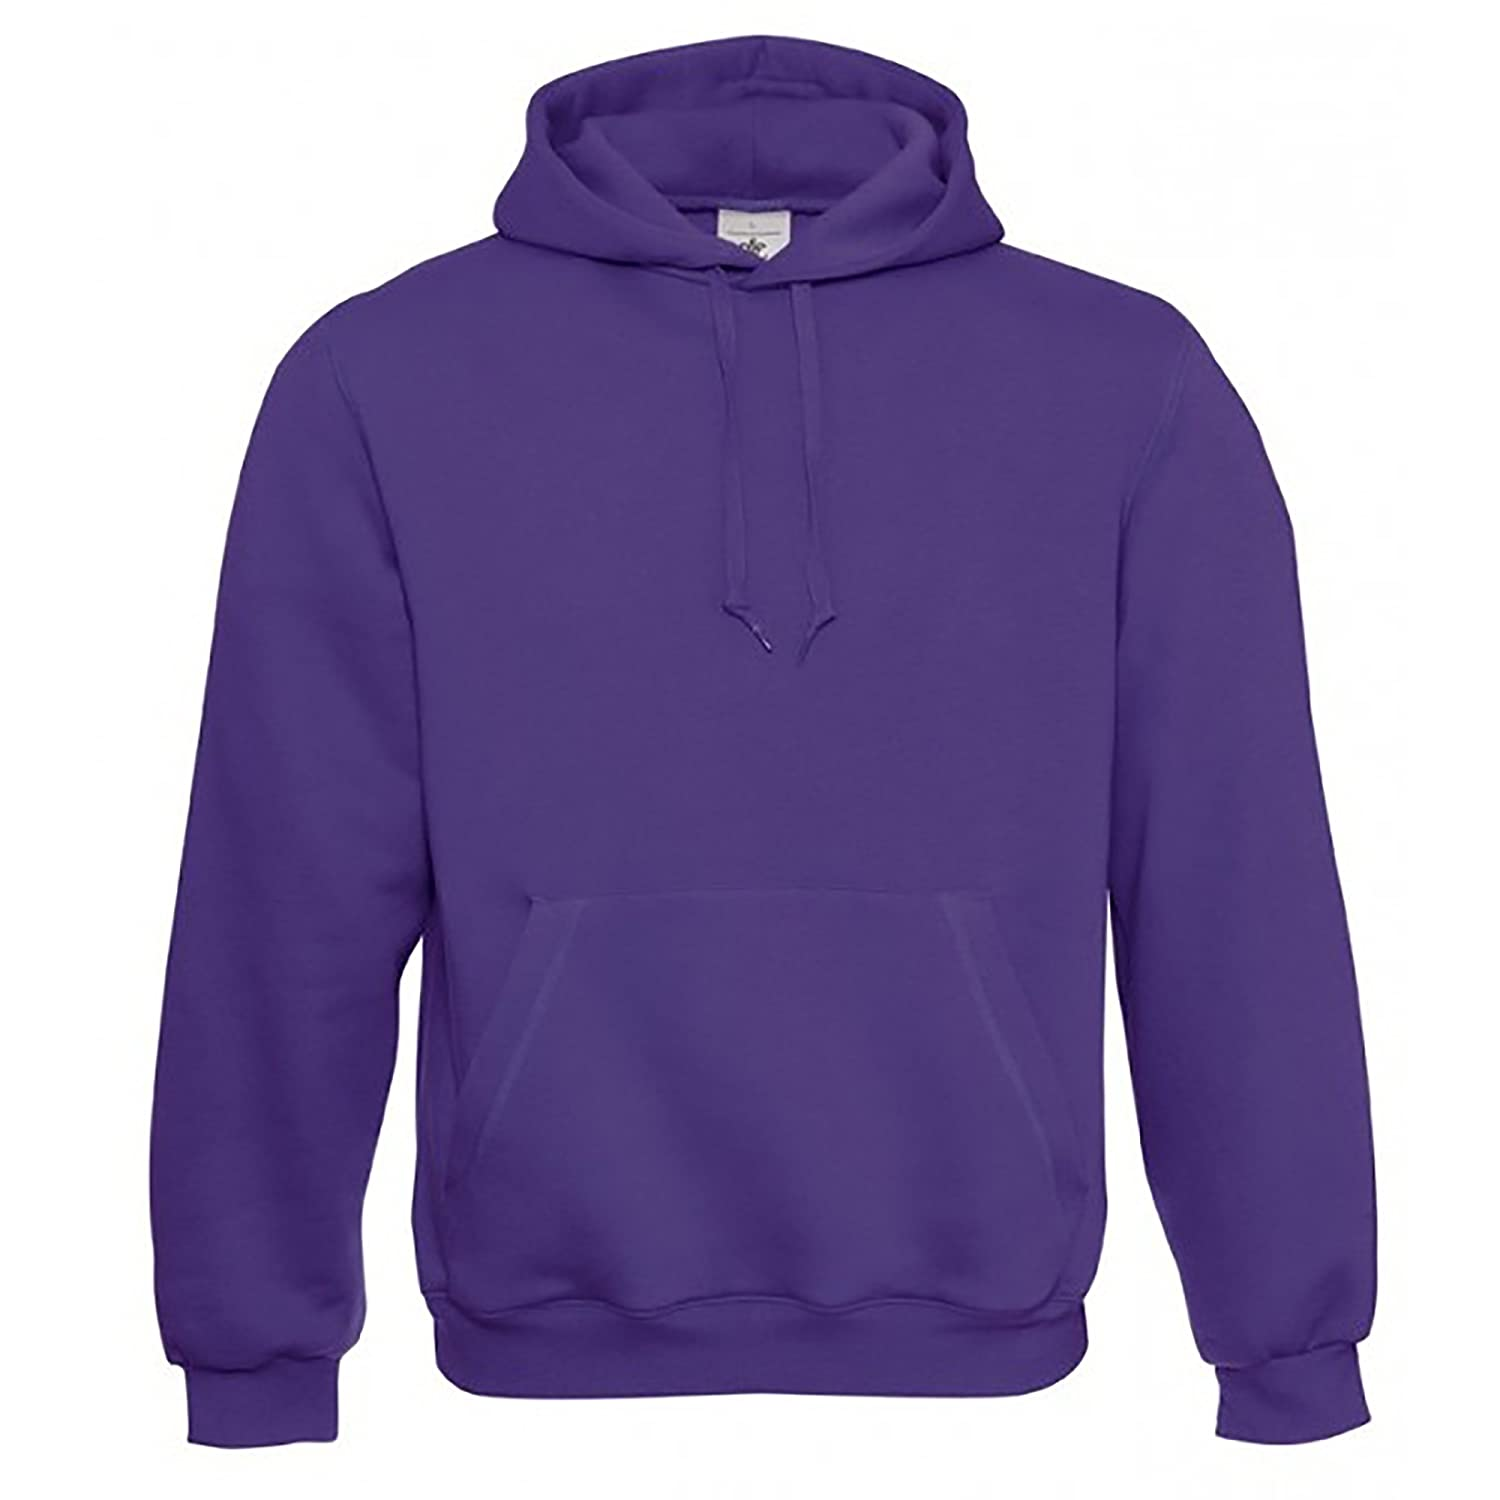 B& C - Sweatshirt à capuche - Homme B&C Collection Hooded